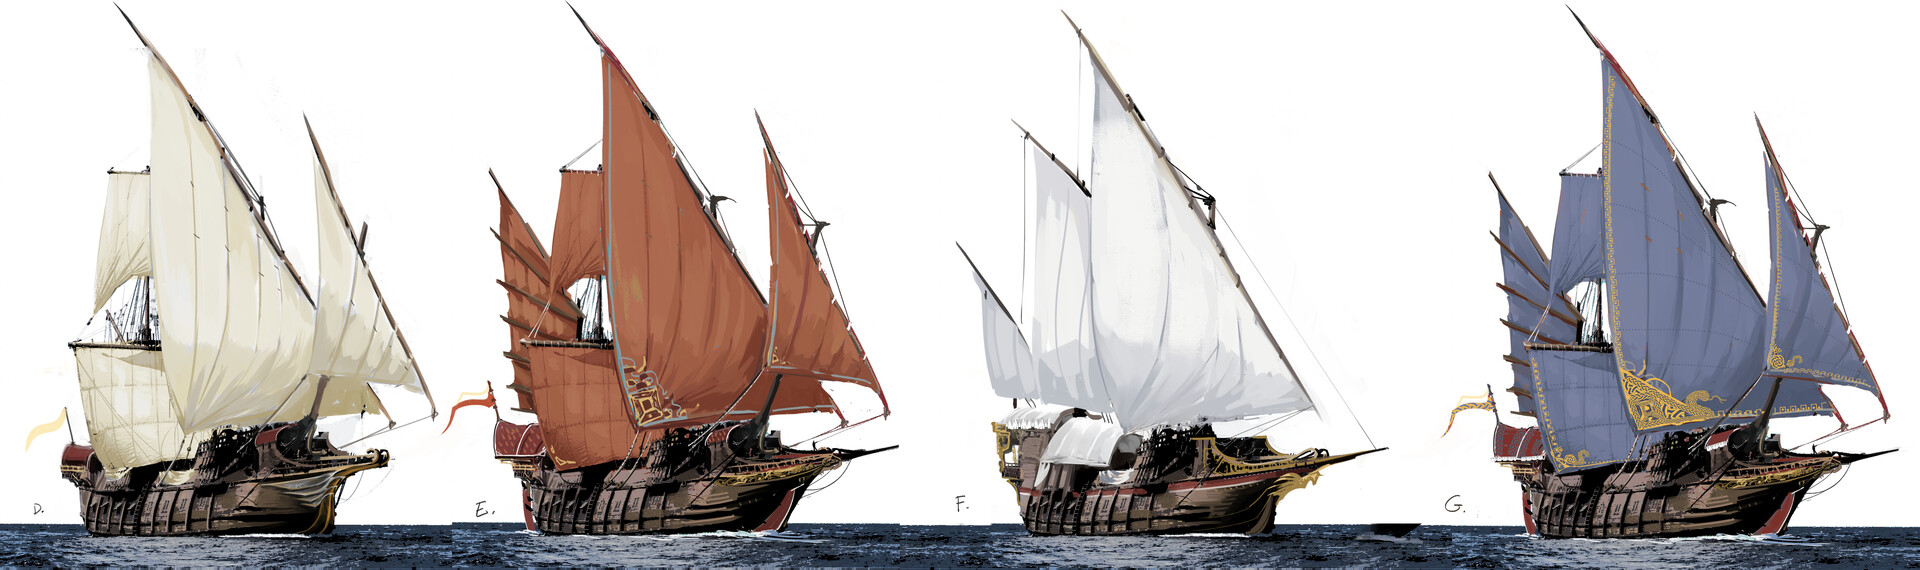 Efflam mercier galleon rigging iterations v003